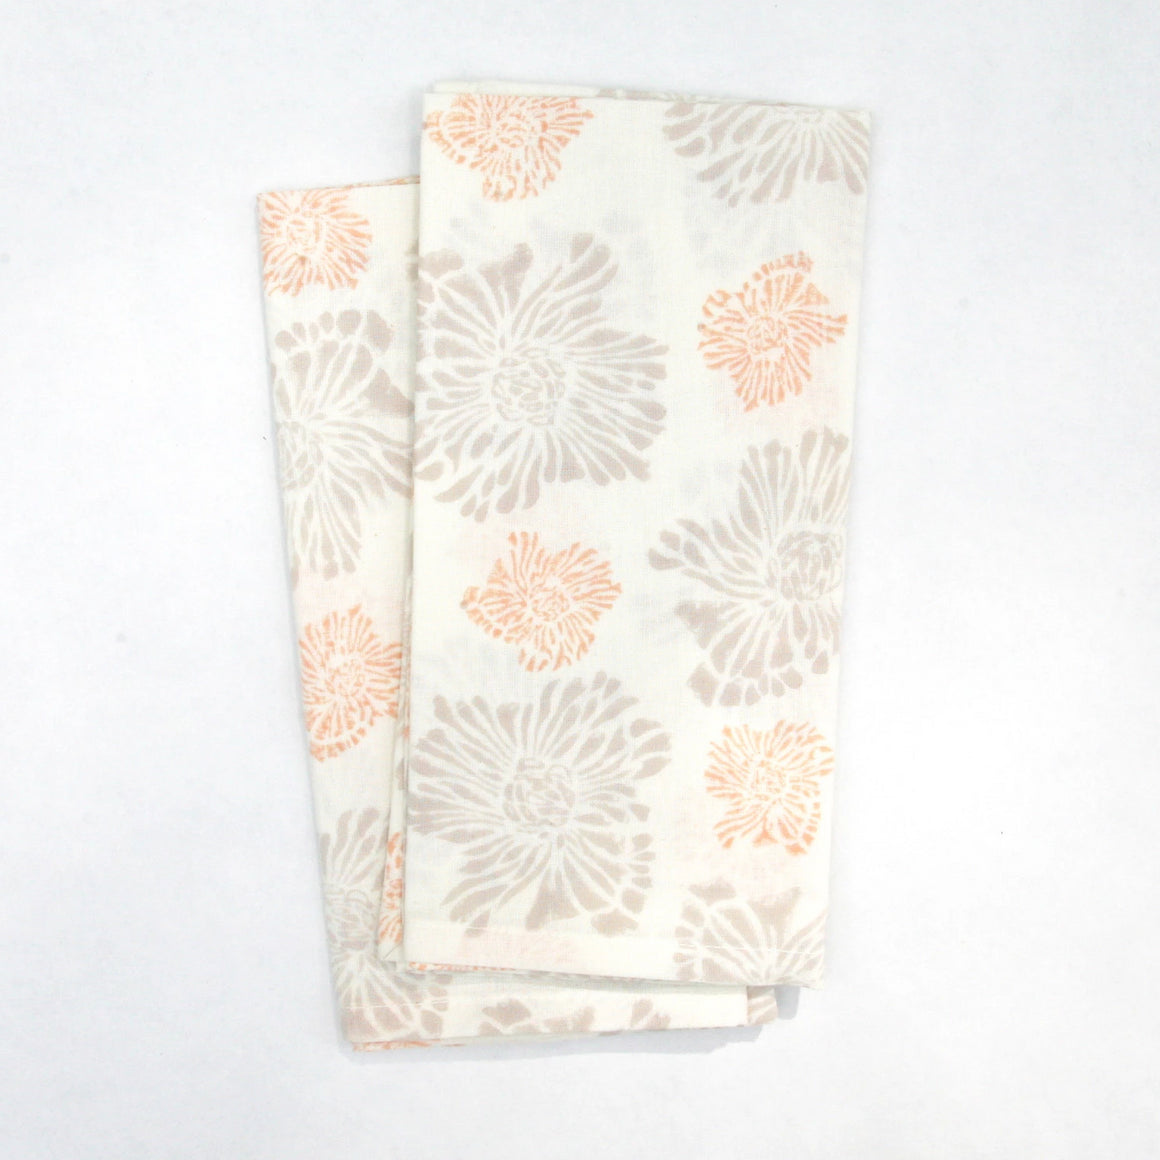 Napkin Set in Hand Block Printed Organic Cotton - Evening Chrysanthemum Print